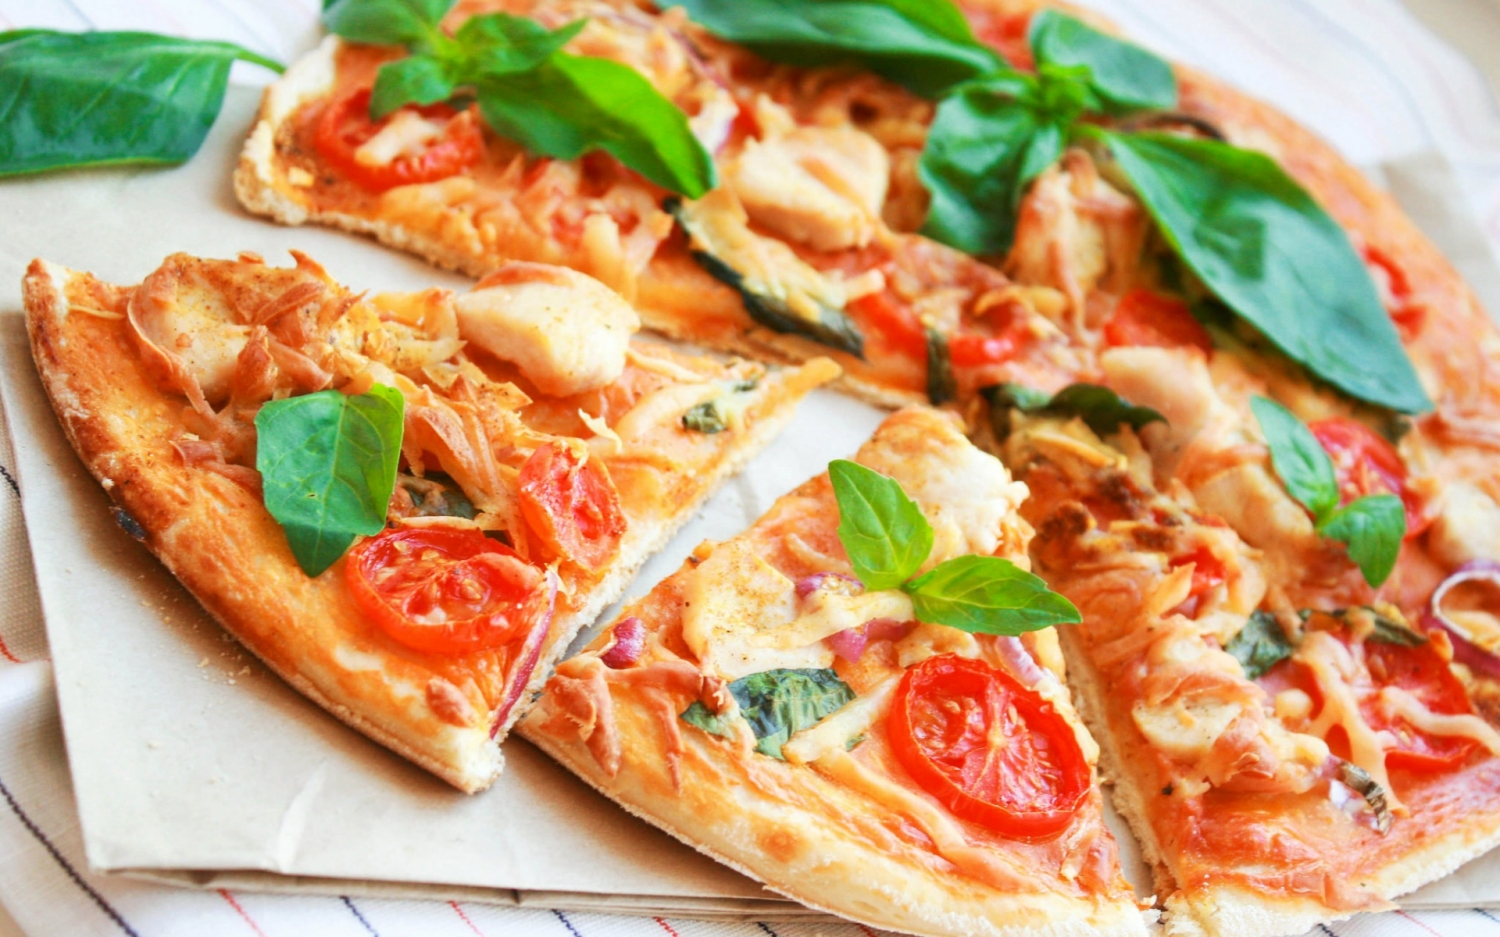 Pizza toppings - foto 1238